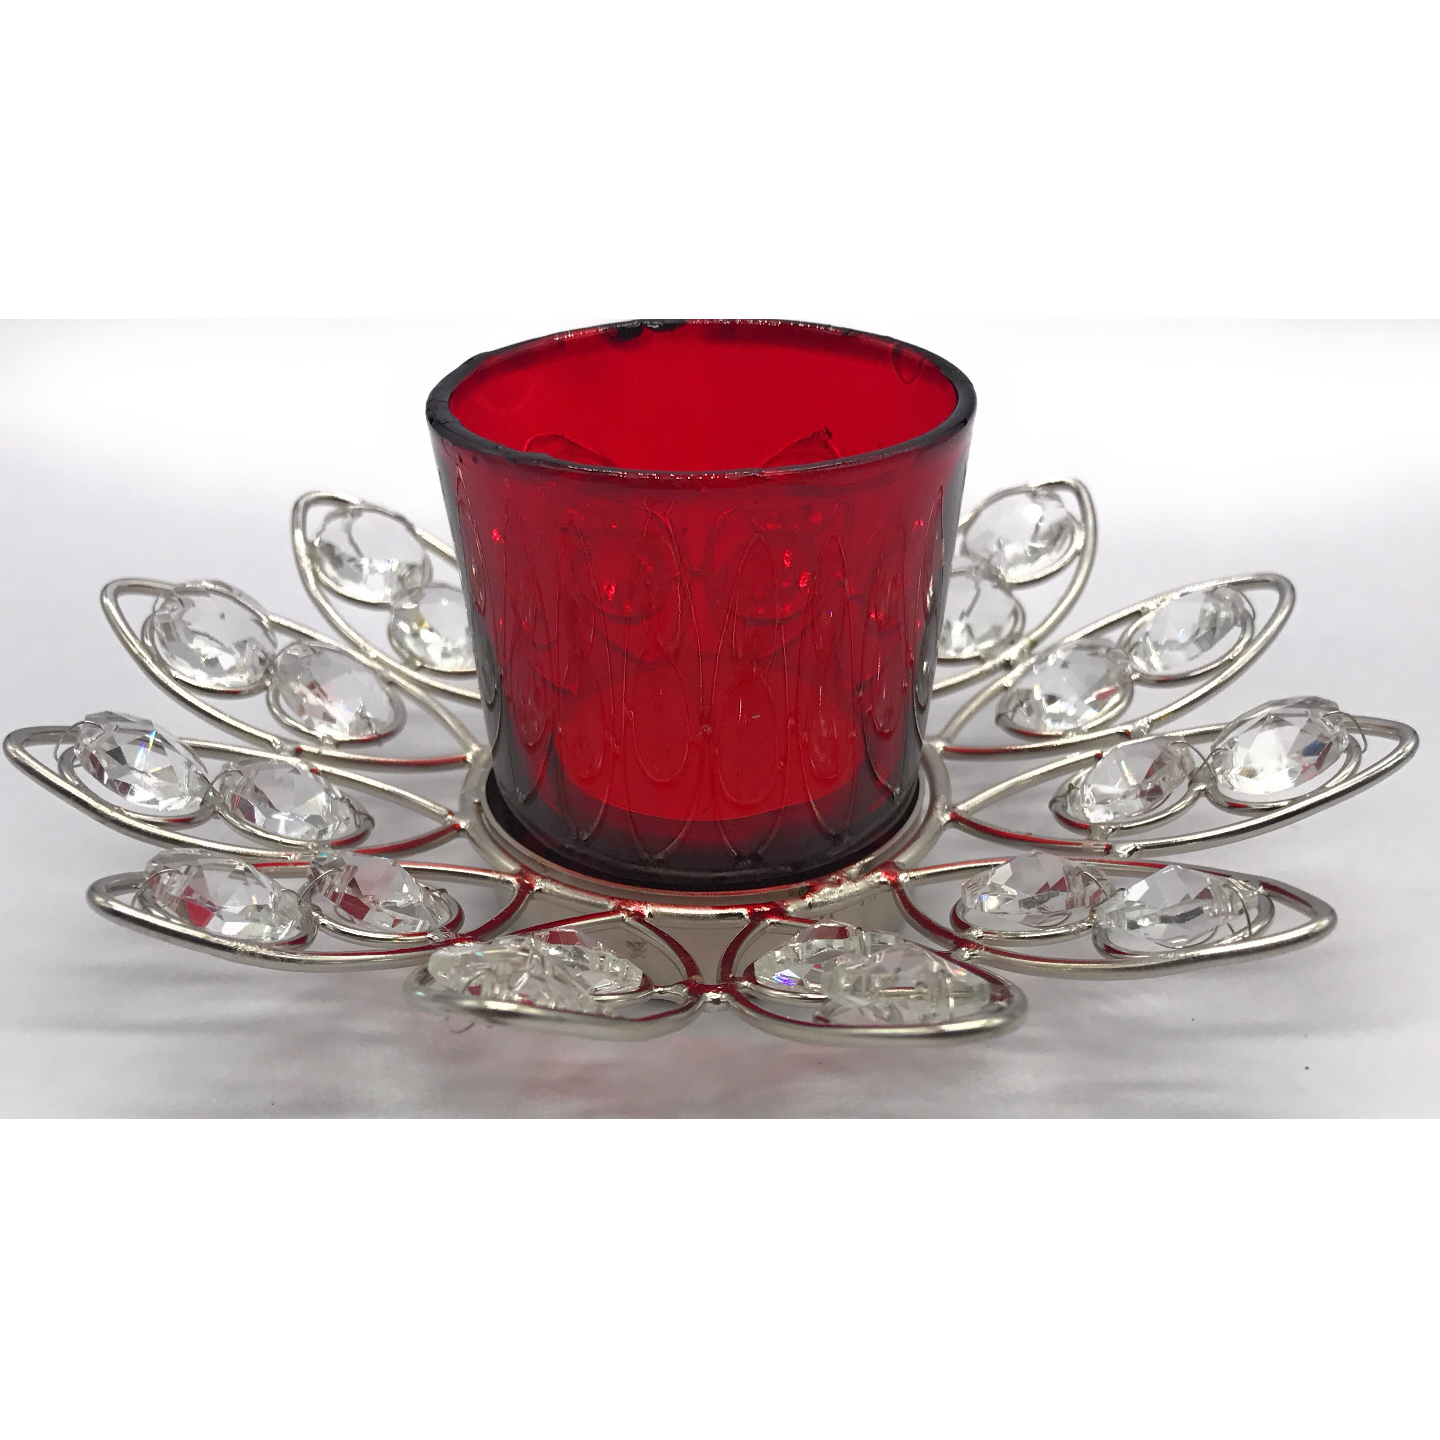 AuraDecor Lotus Shape Tealight Holder with a Tealight